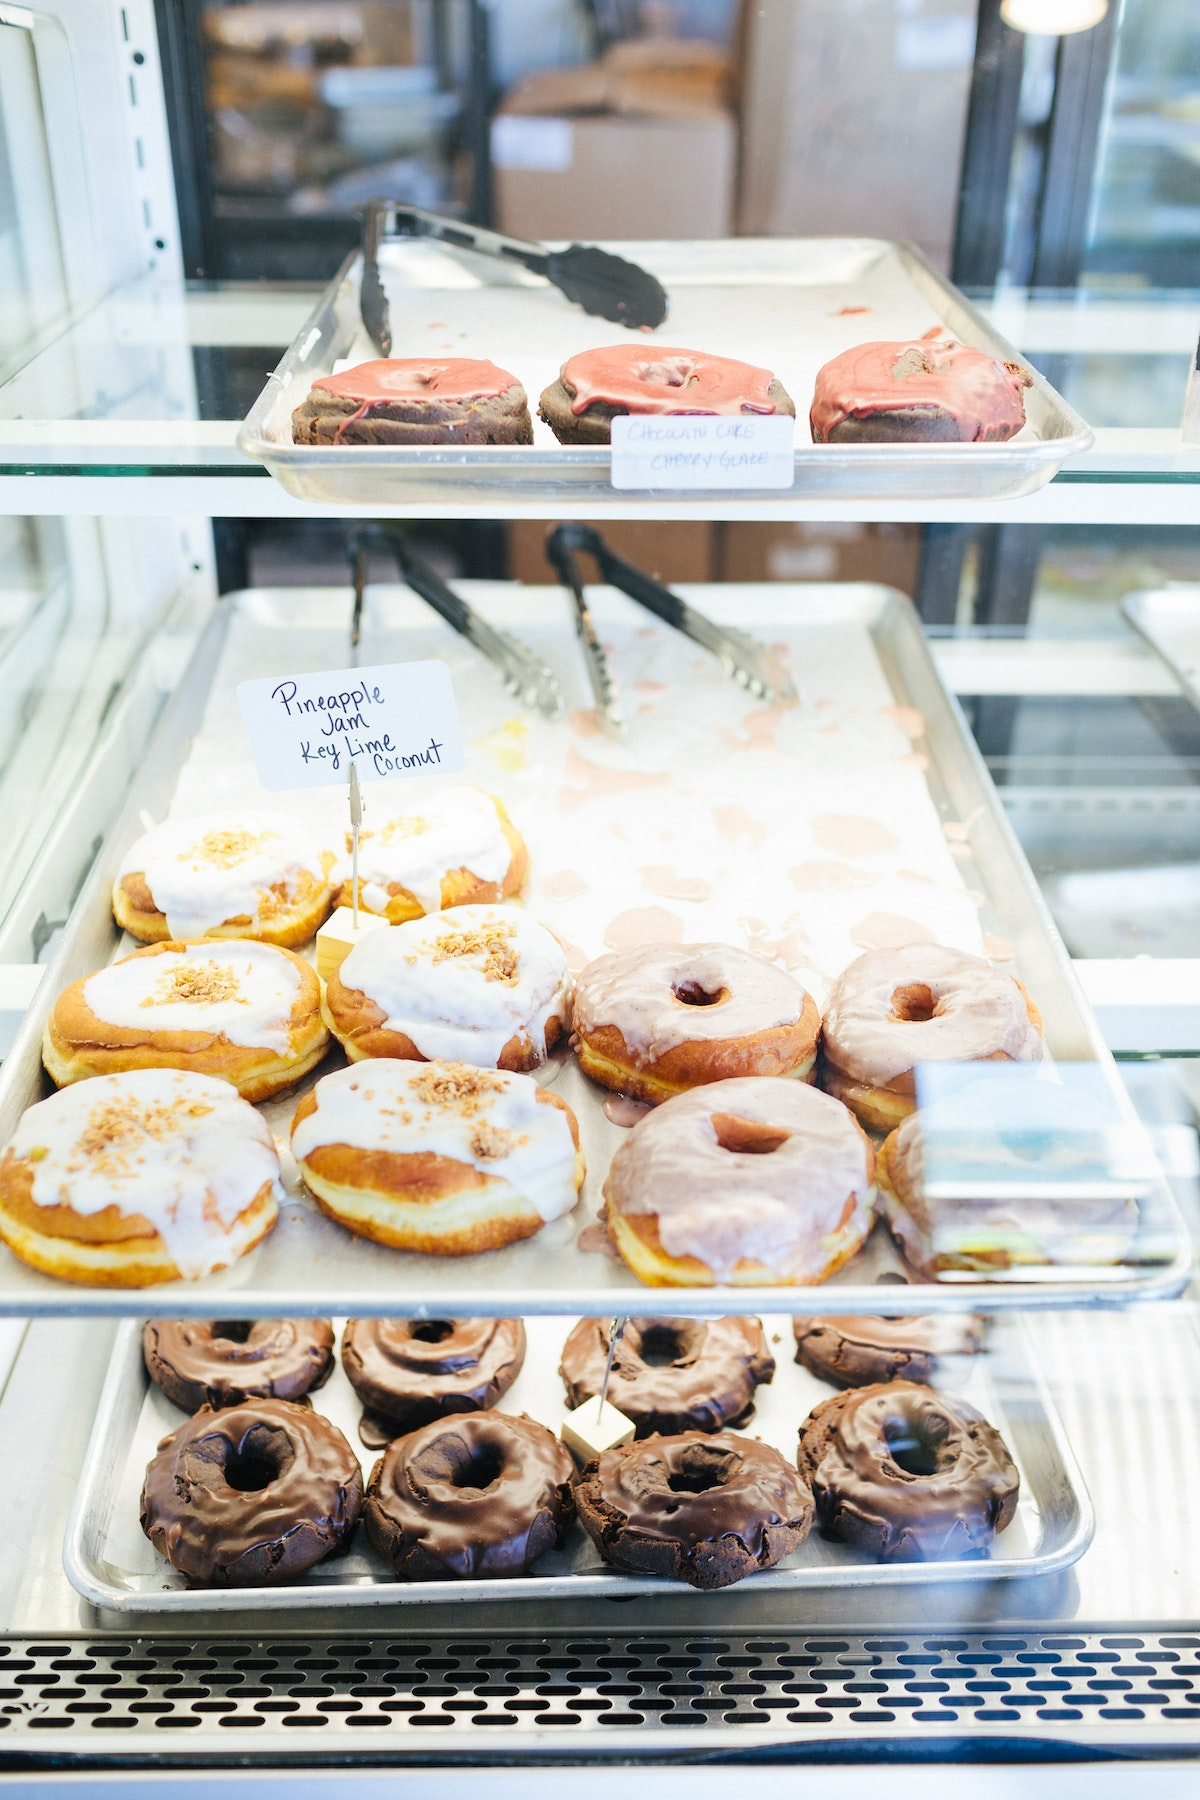 Nomads Donuts